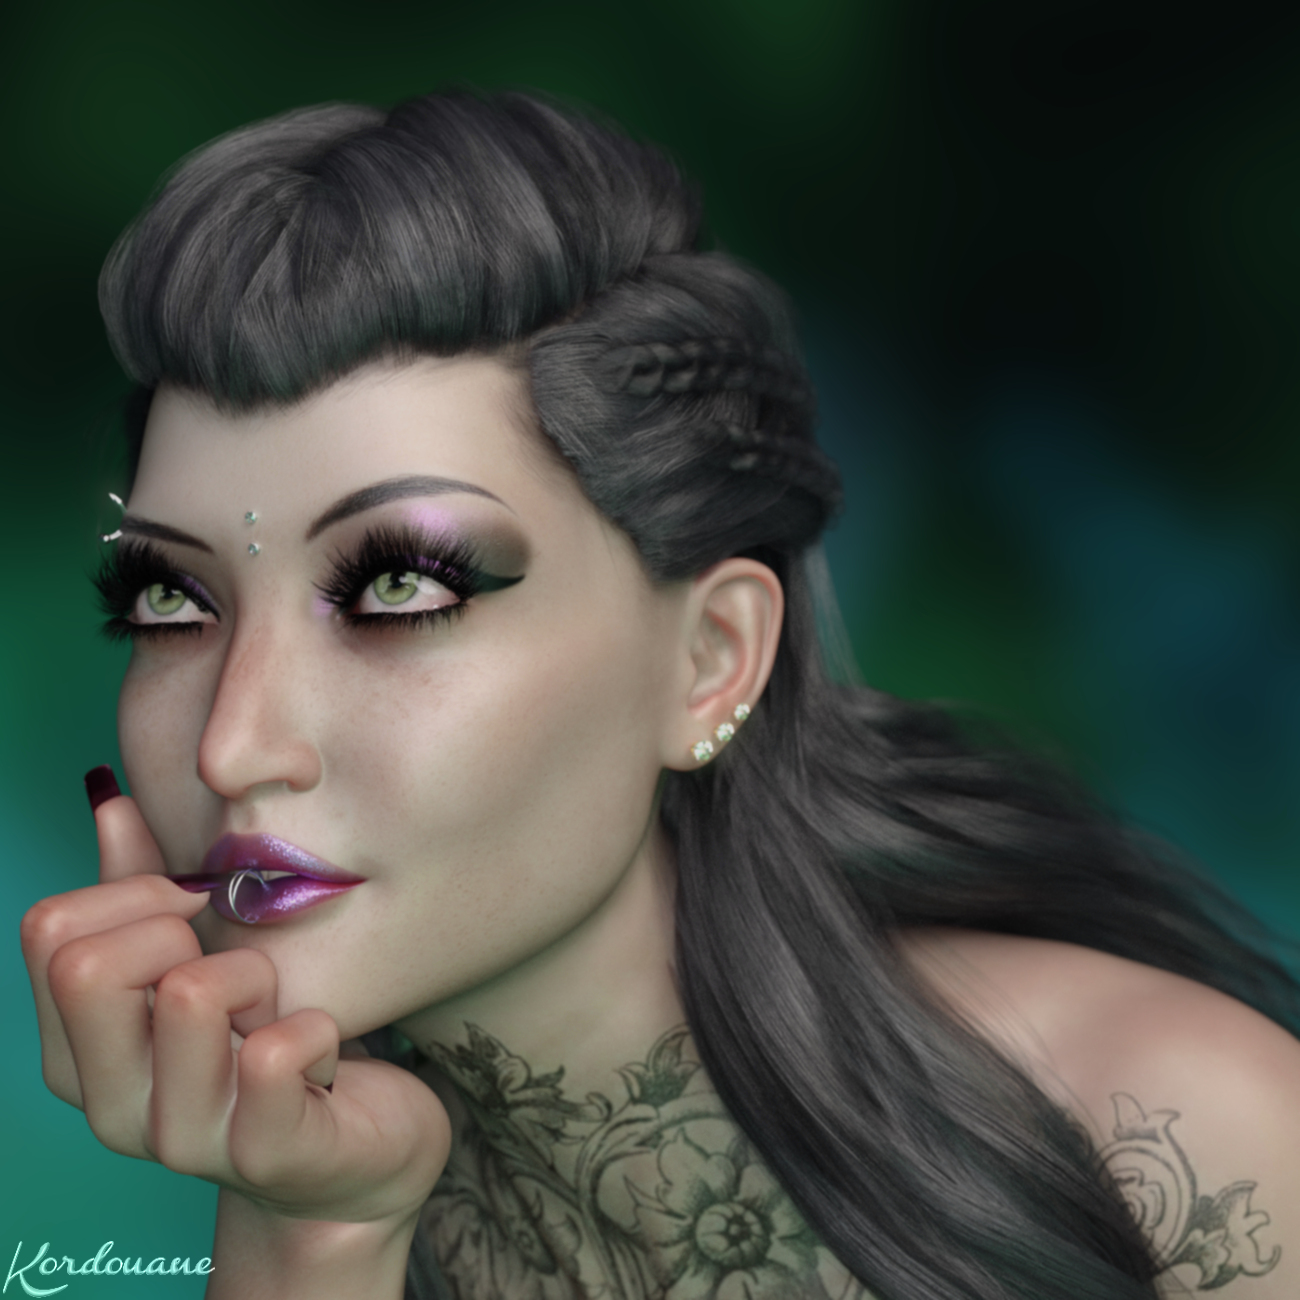 Refined Gothic woman portrait